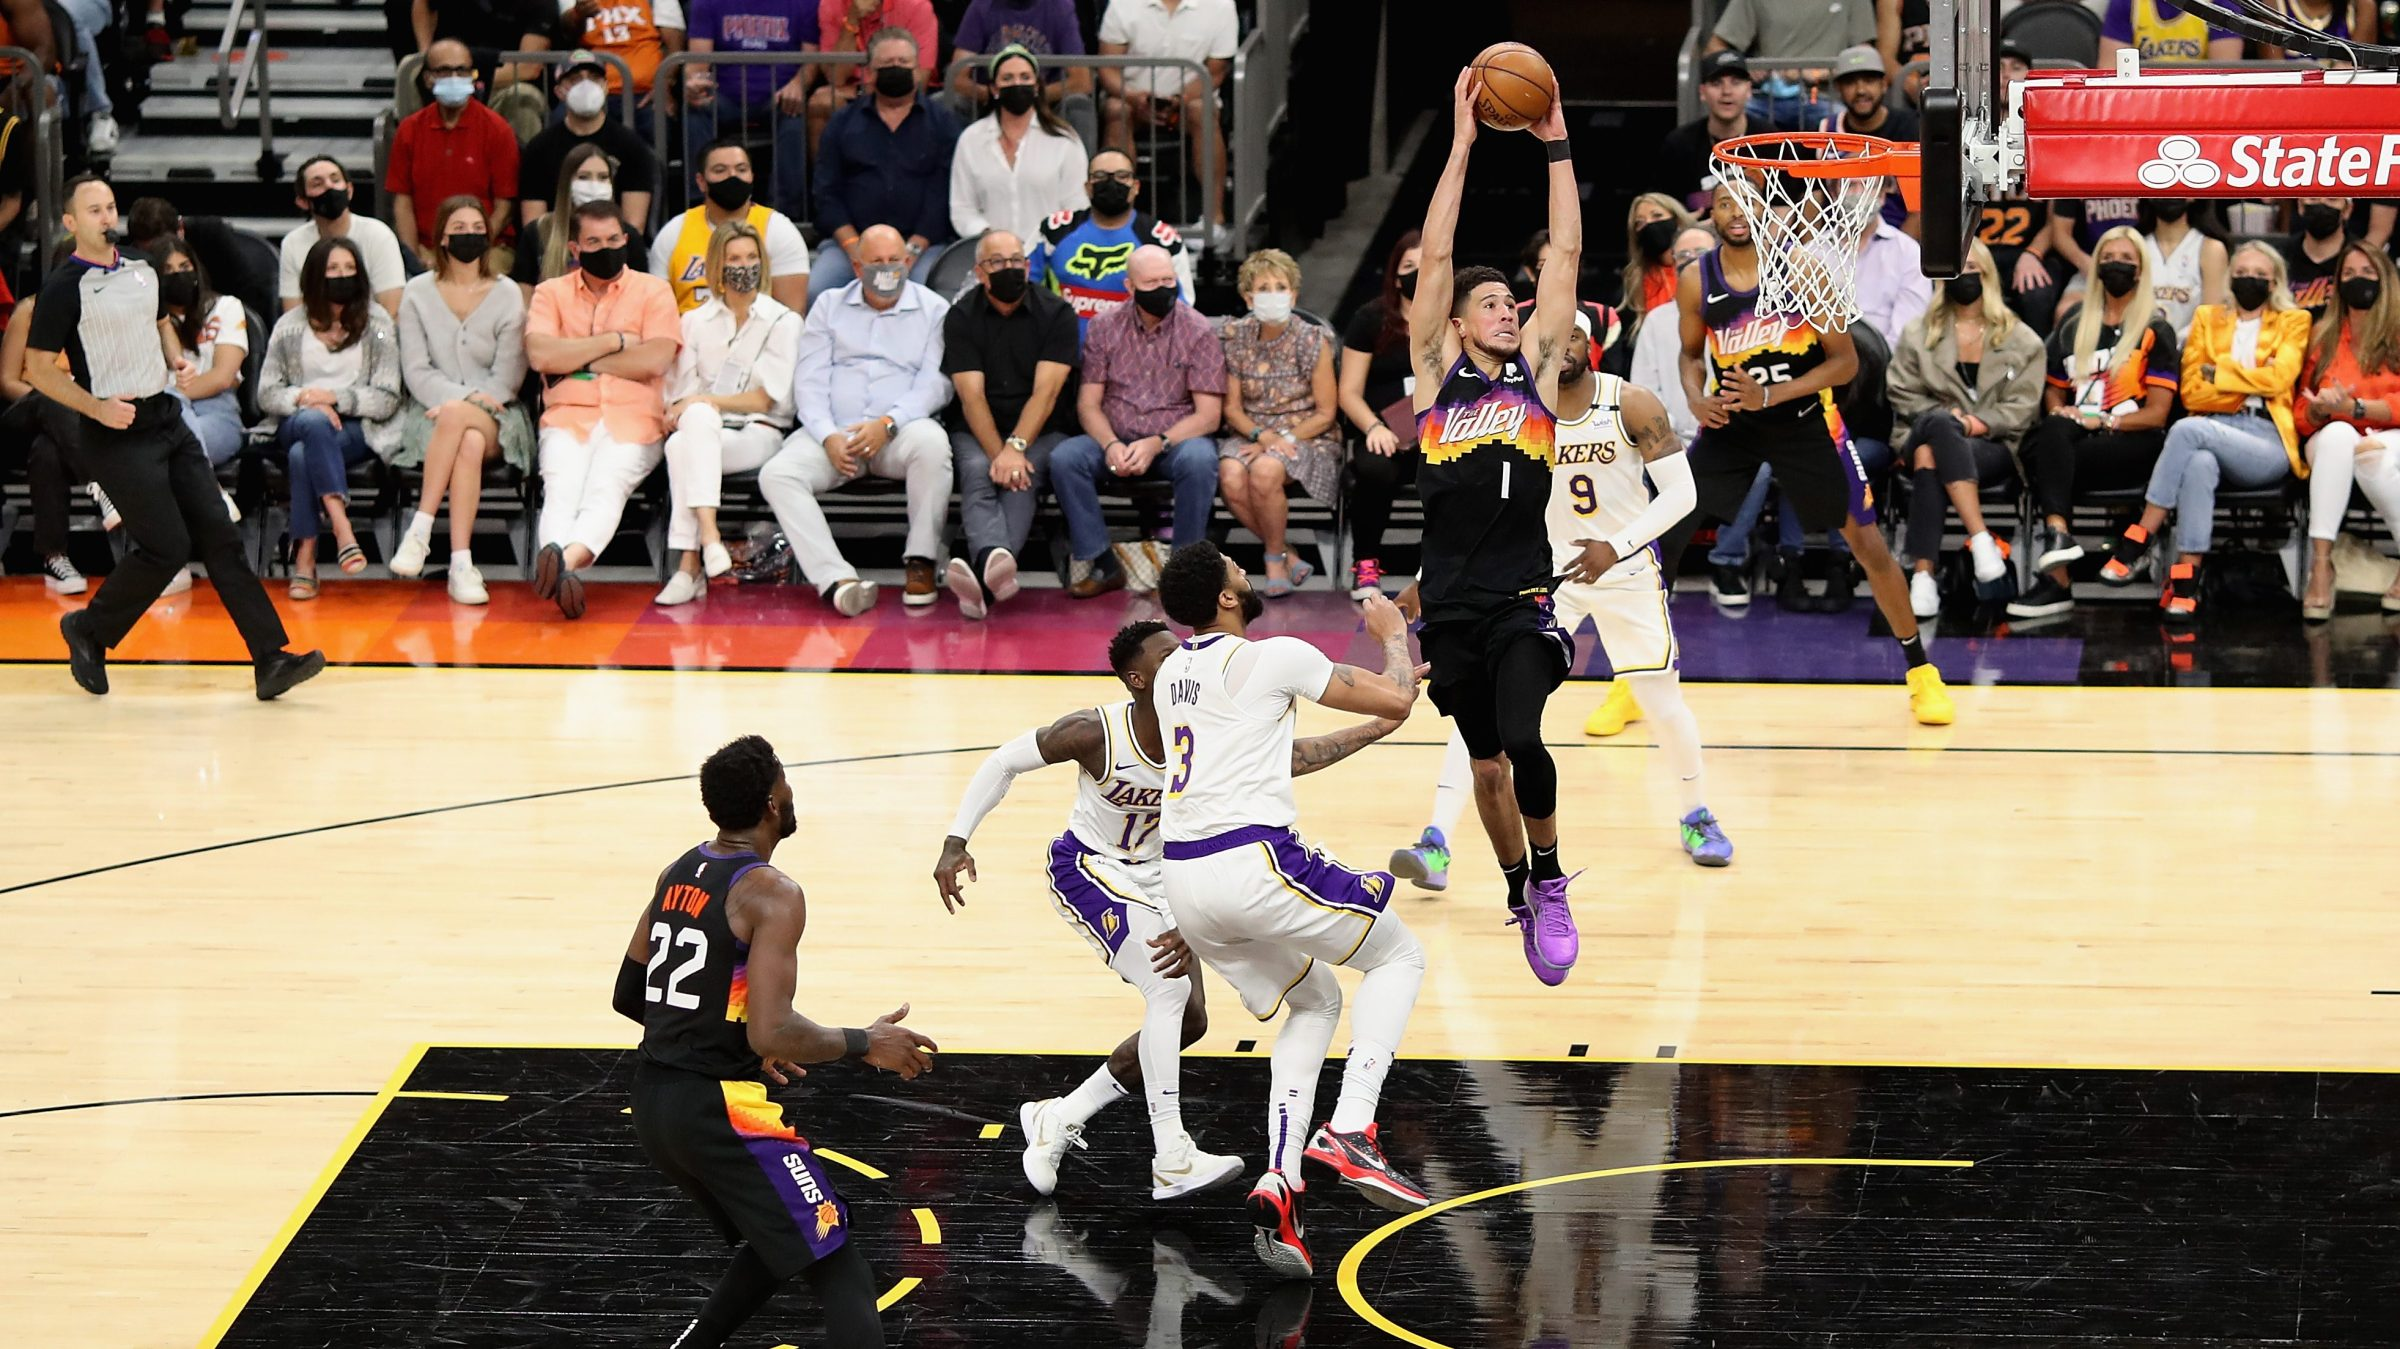 Devin Booker #1 of the Phoenix Suns slam dunks the ball past Anthony Davis #3 of the Los Angeles Lakers during the first half of Game One of the Western Conference first-round playoff series at Phoenix Suns Arena on May 23, 2021 in Phoenix, Arizona. The Suns defeated the Lakers 99-90.